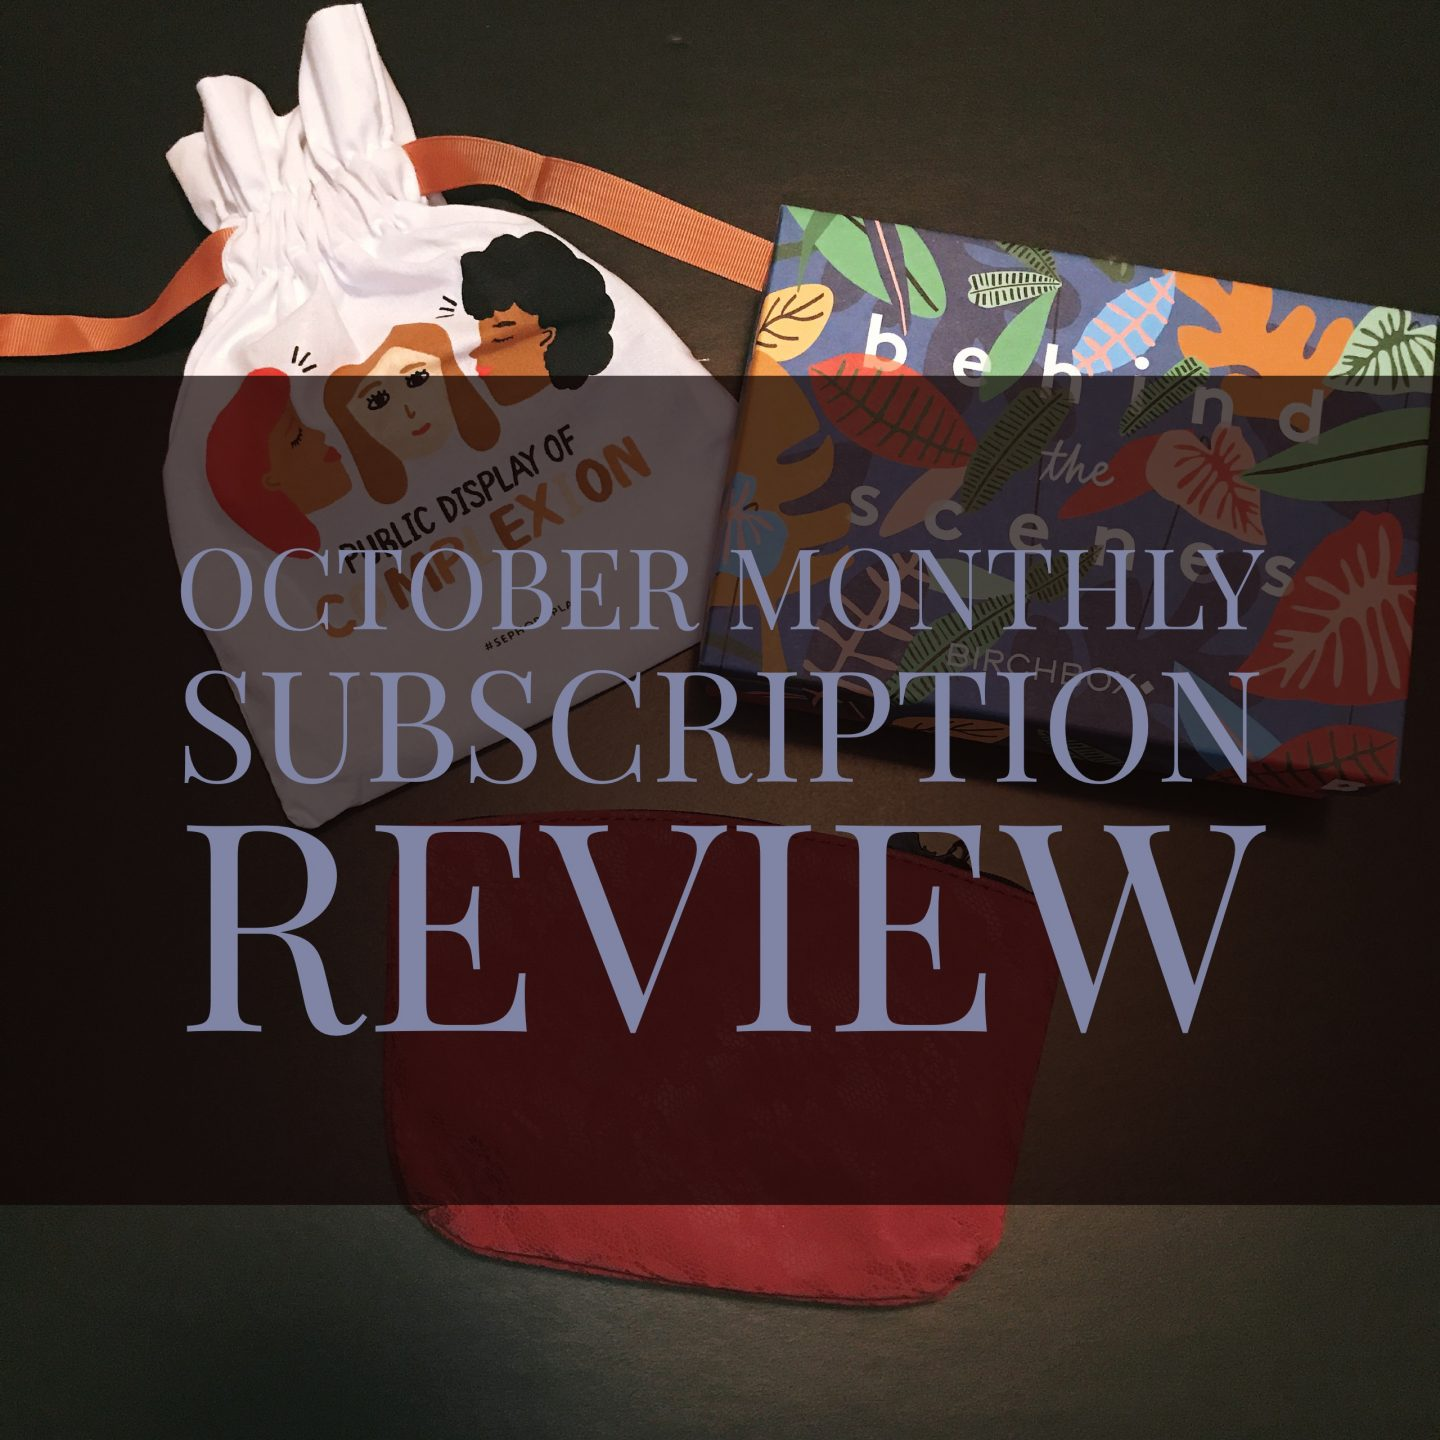 October Monthly Subscription Review